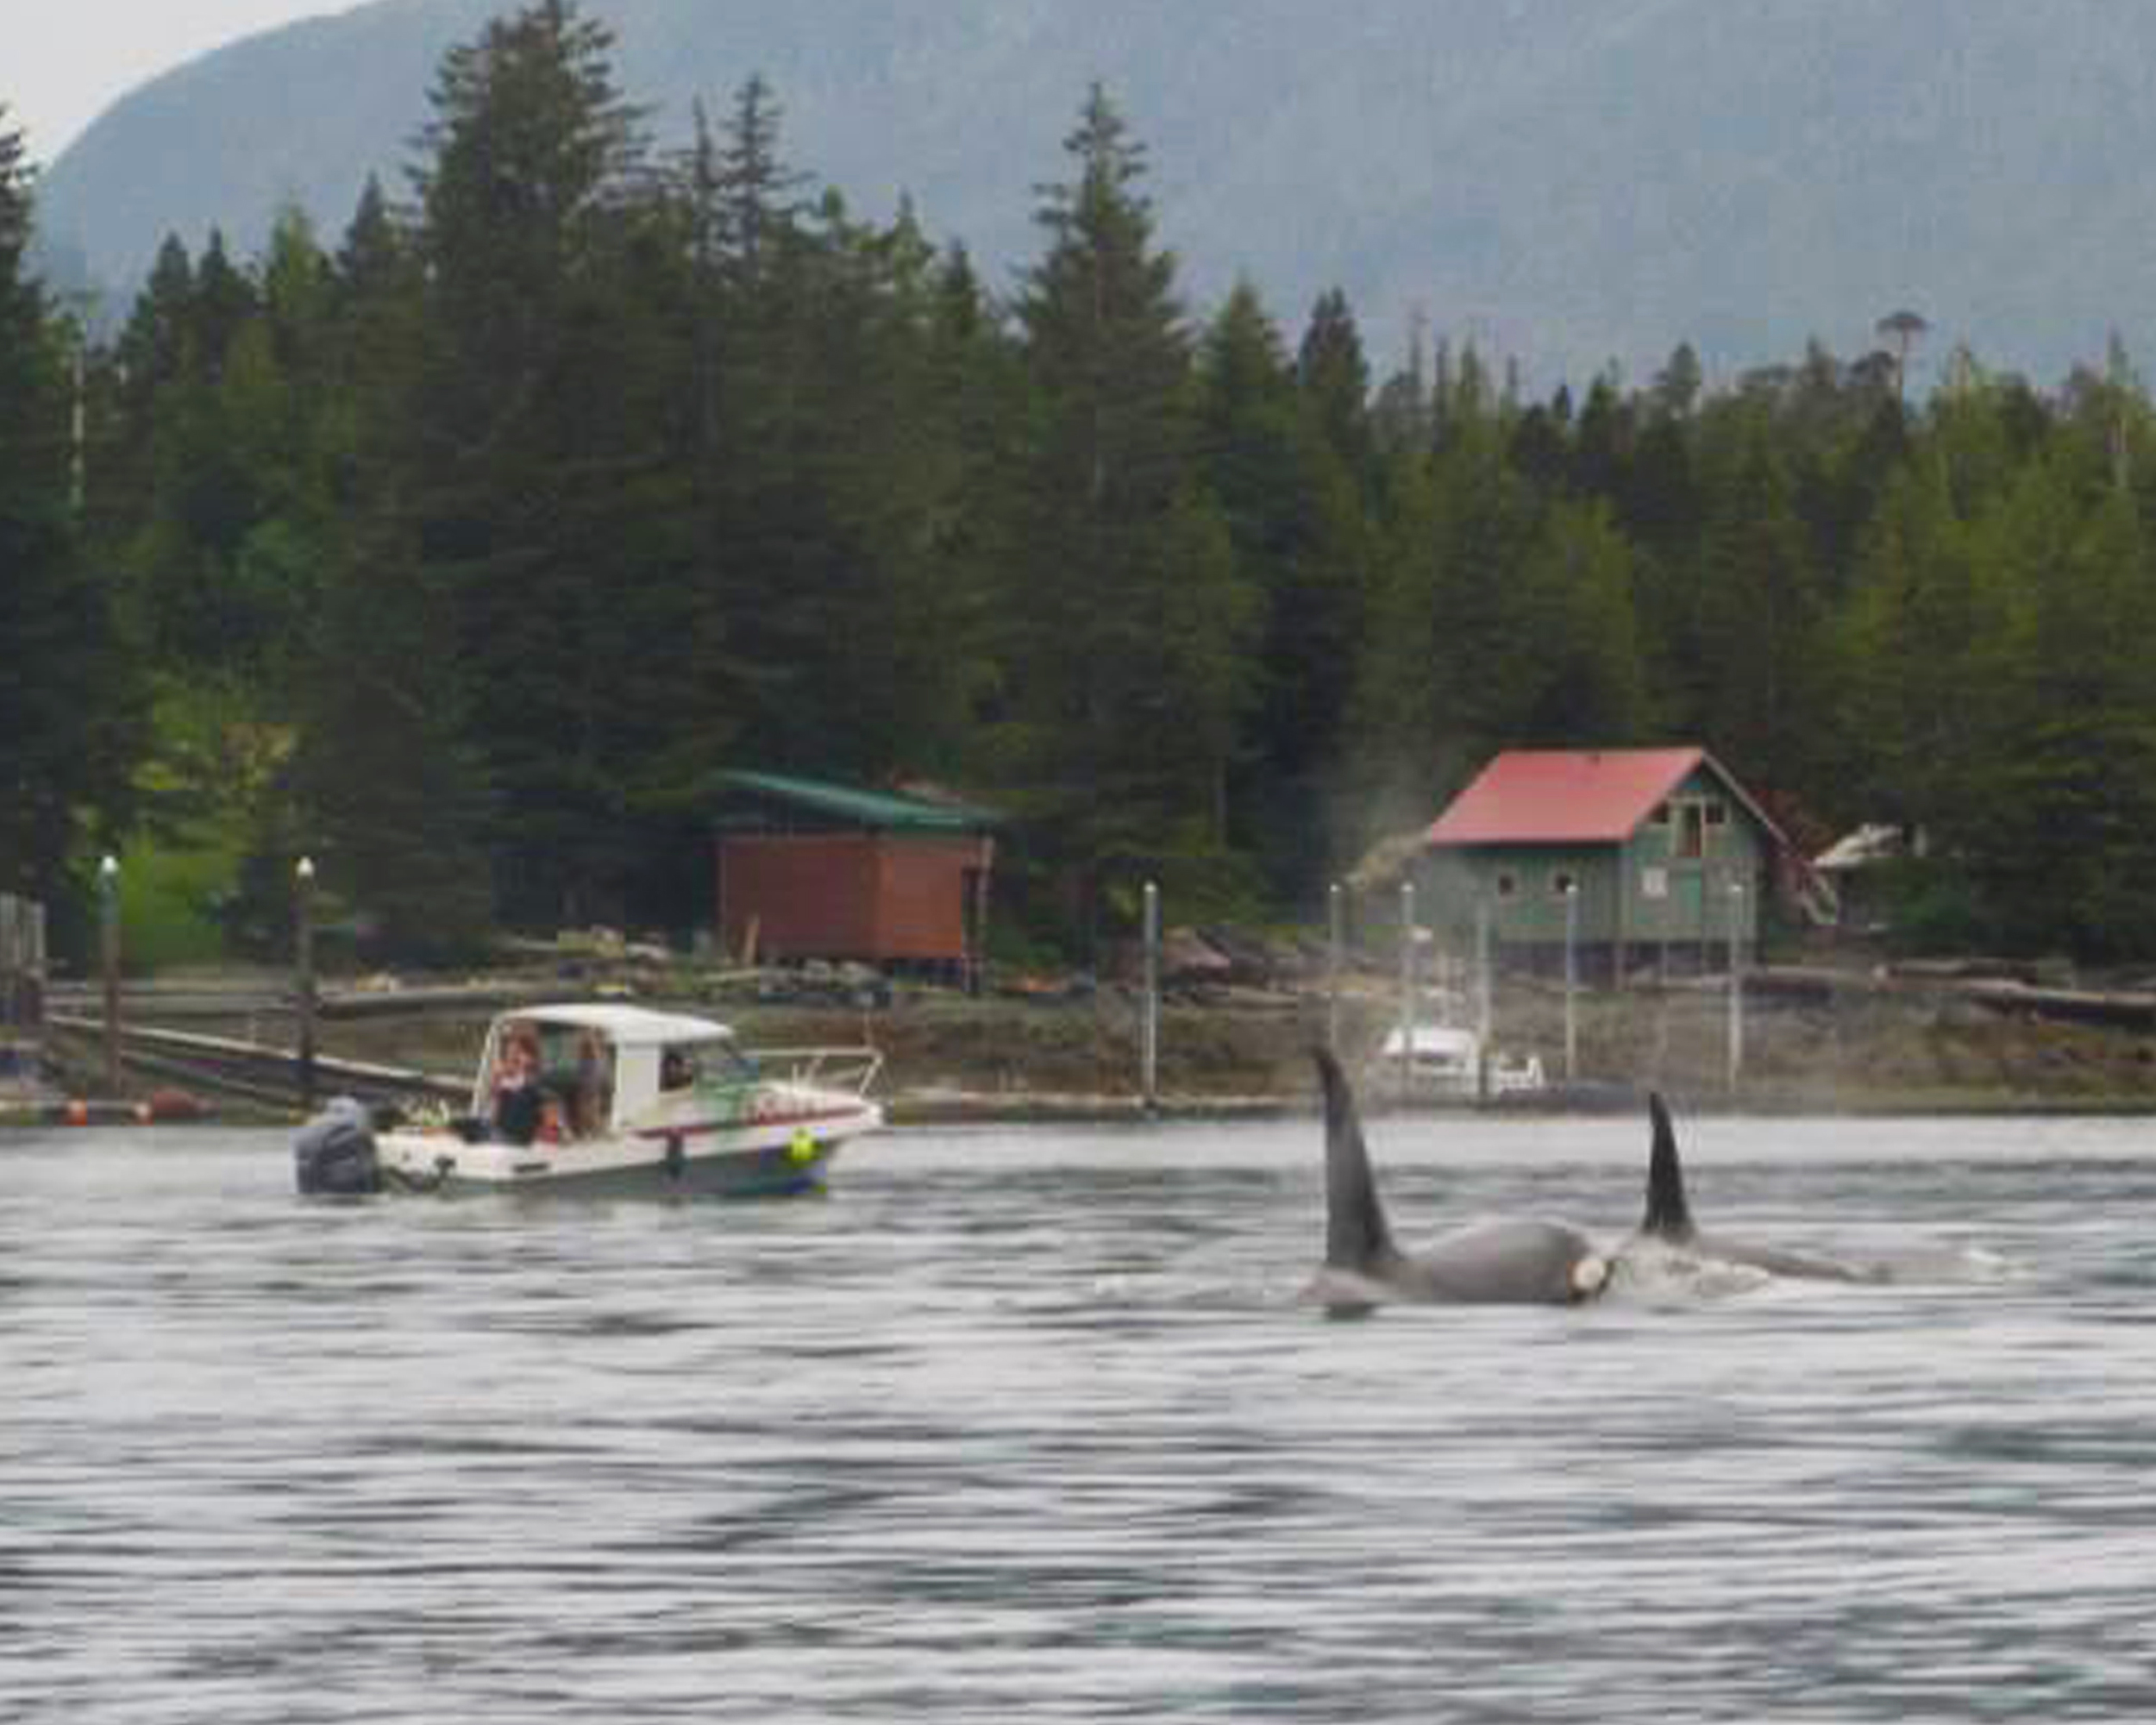 Whales are a common sight in the Tongass Narrows in front of Ketchikan.